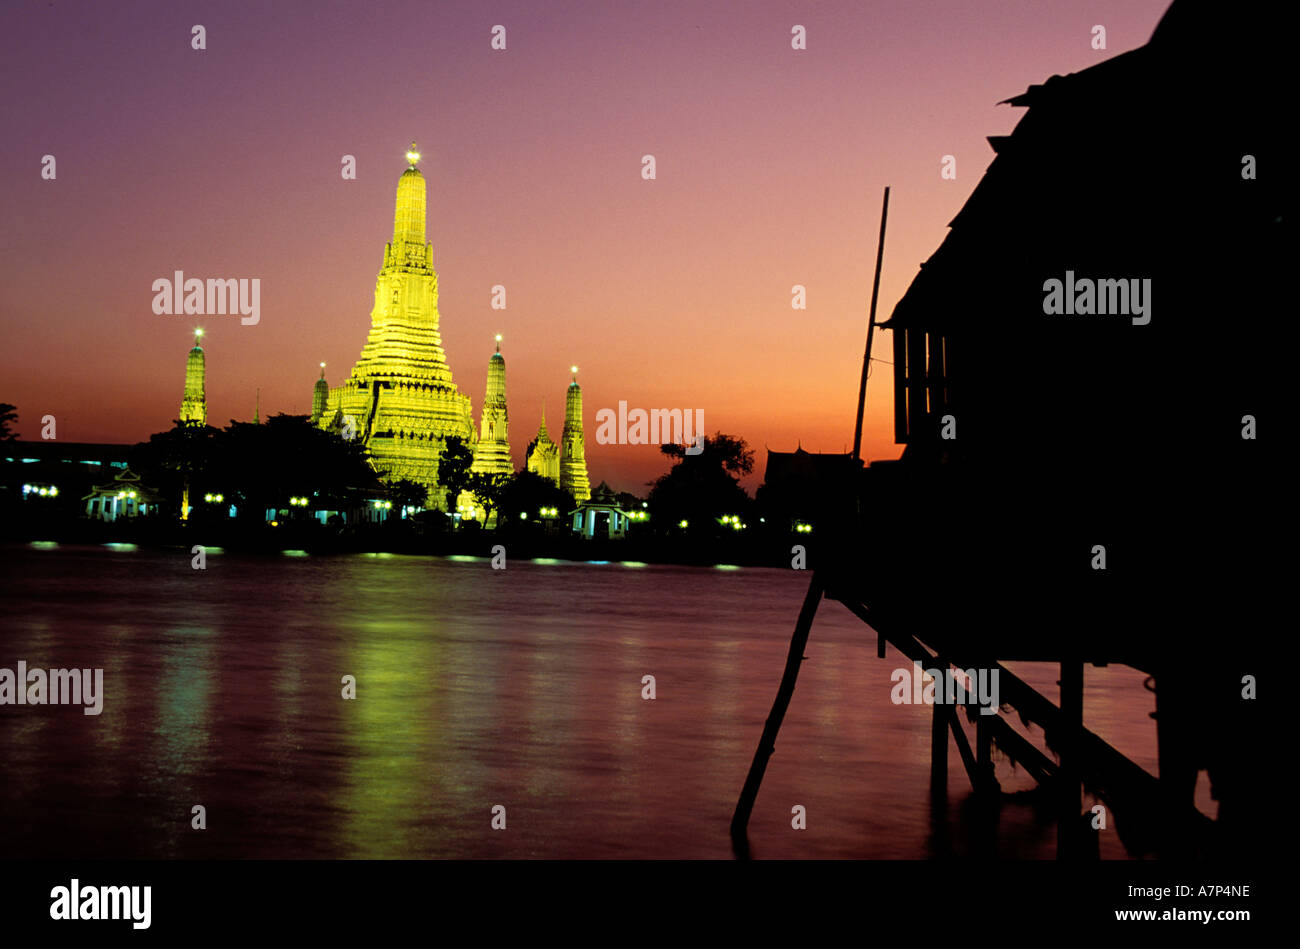 Thailand, Bangkok, Wat Arun better known as the Temple of the Dawn - Stock Image